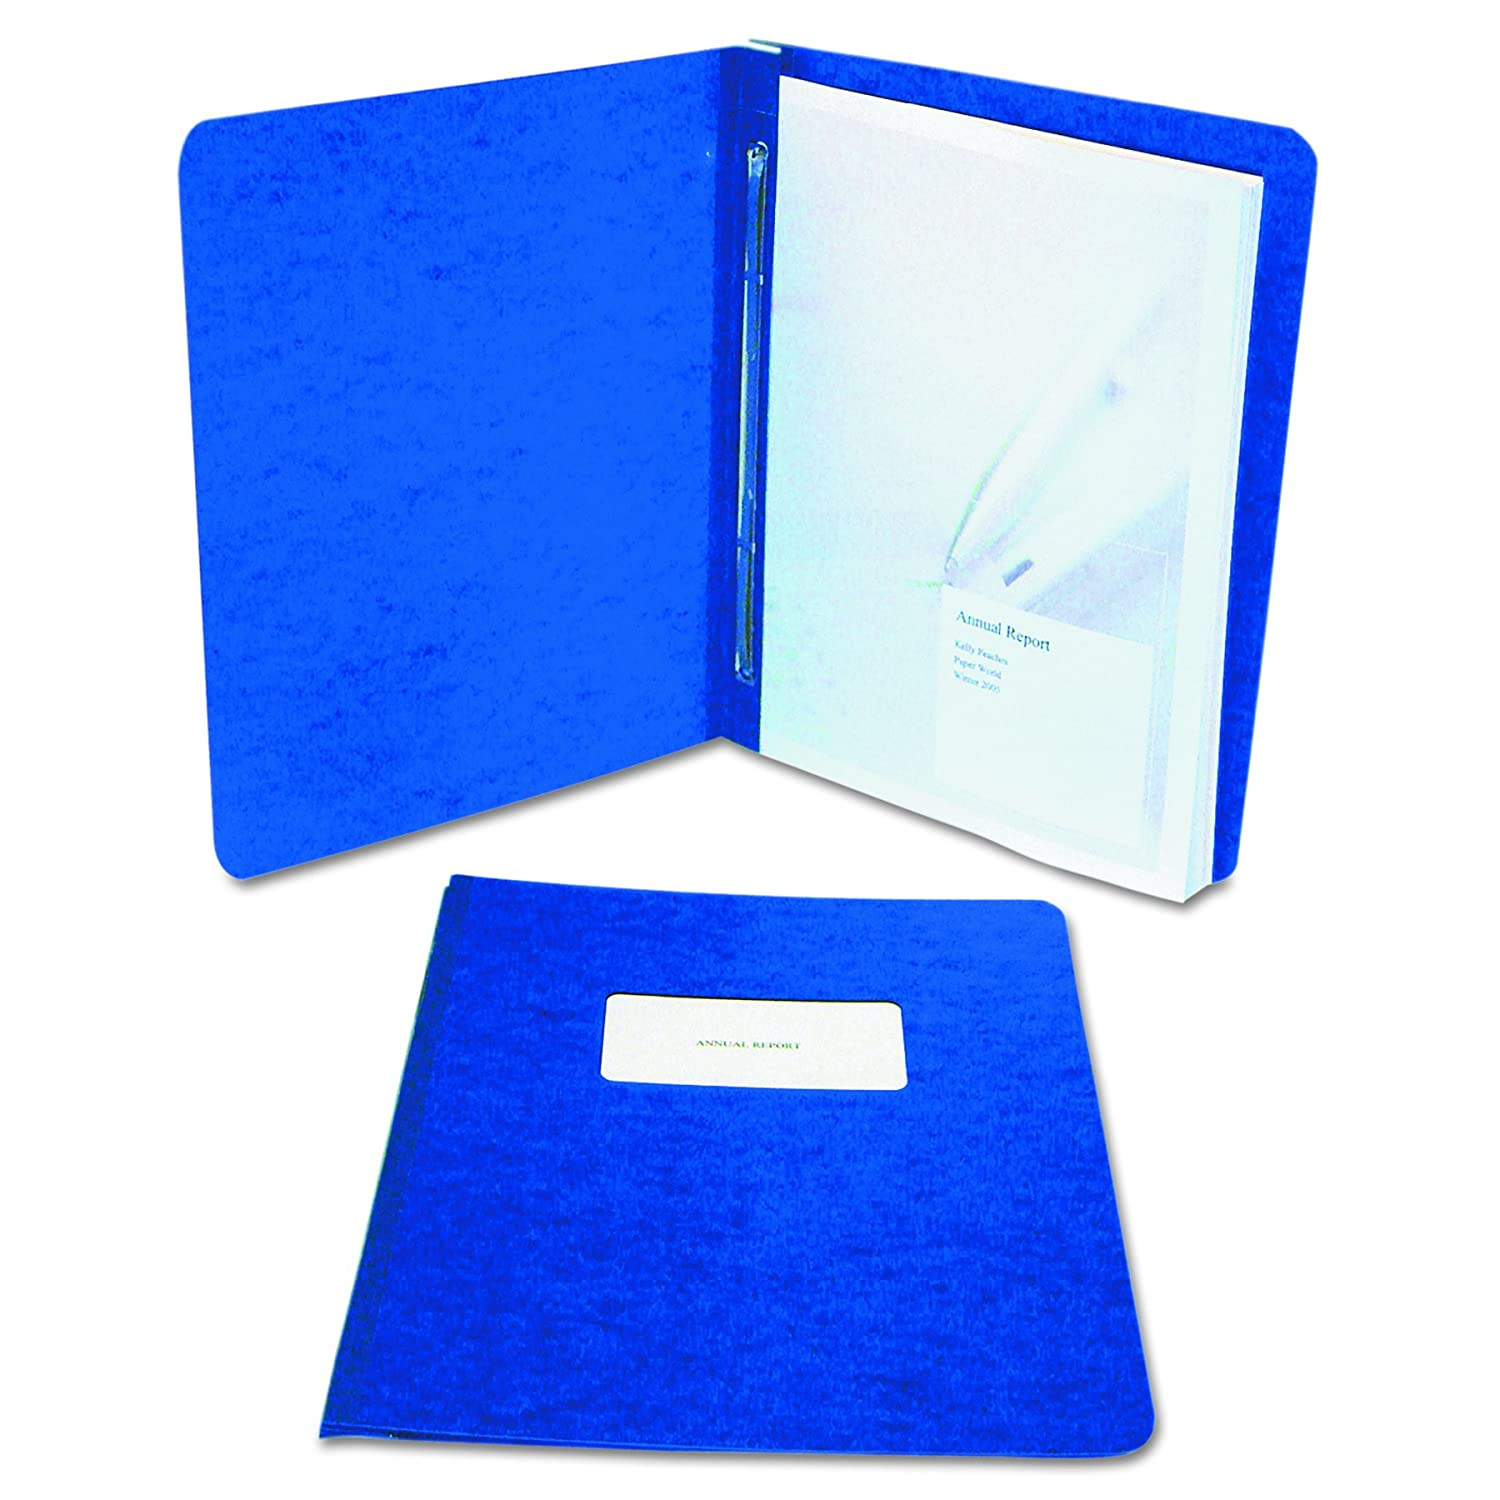 A7025072A 3 Inch Capacity Tyvek Reinforced Hinge ACCO PRESSTEX Report Cover Side Bound 8.5 Inch Centers Light Blue Letter Size